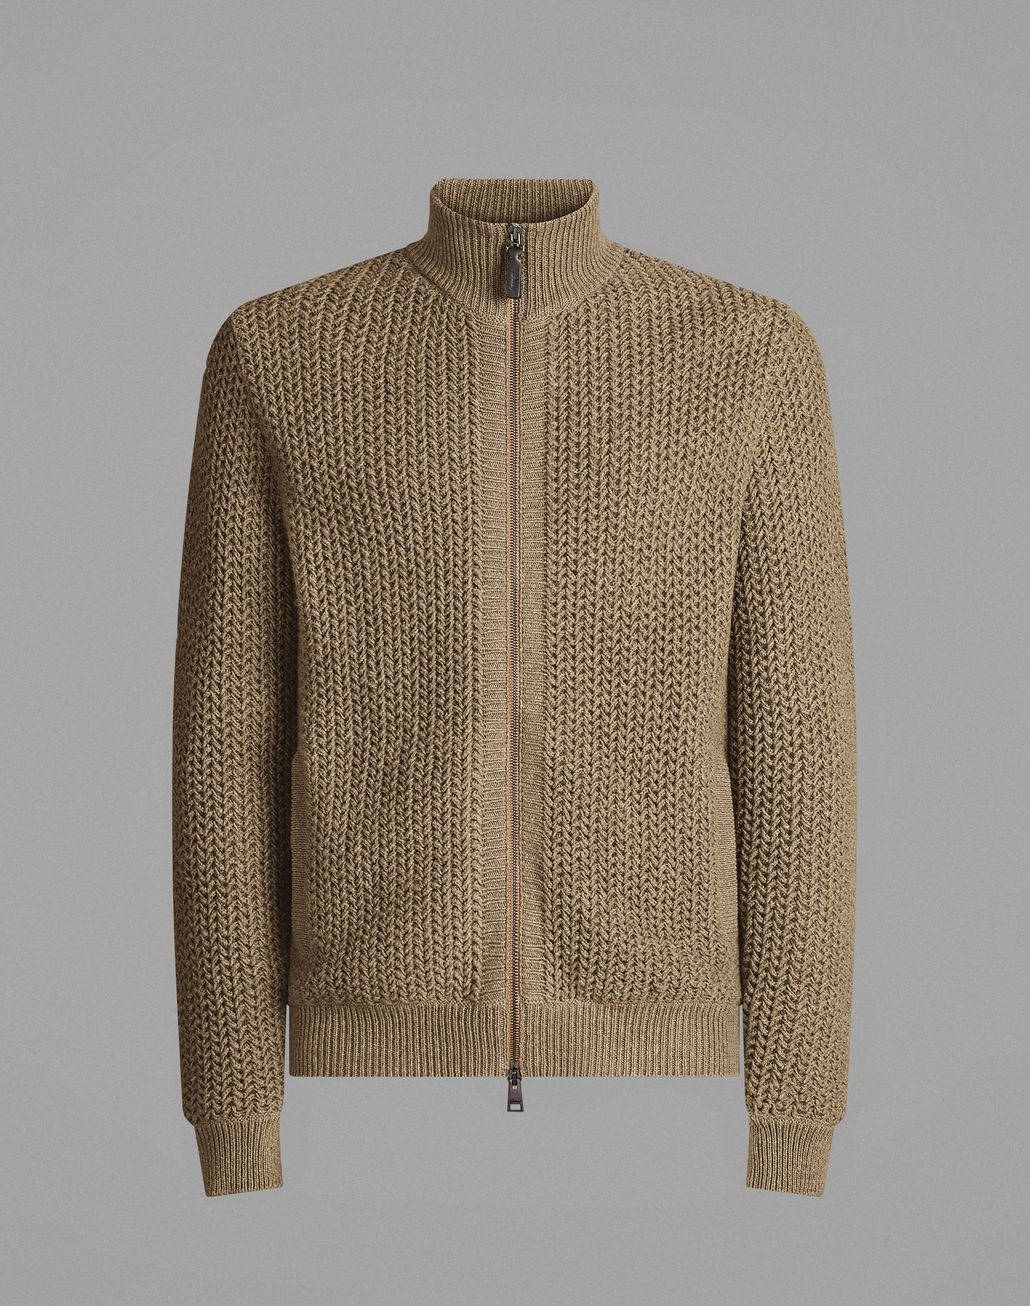 BRIONI Beige Full-Zipper Sweater Knitwear Man f